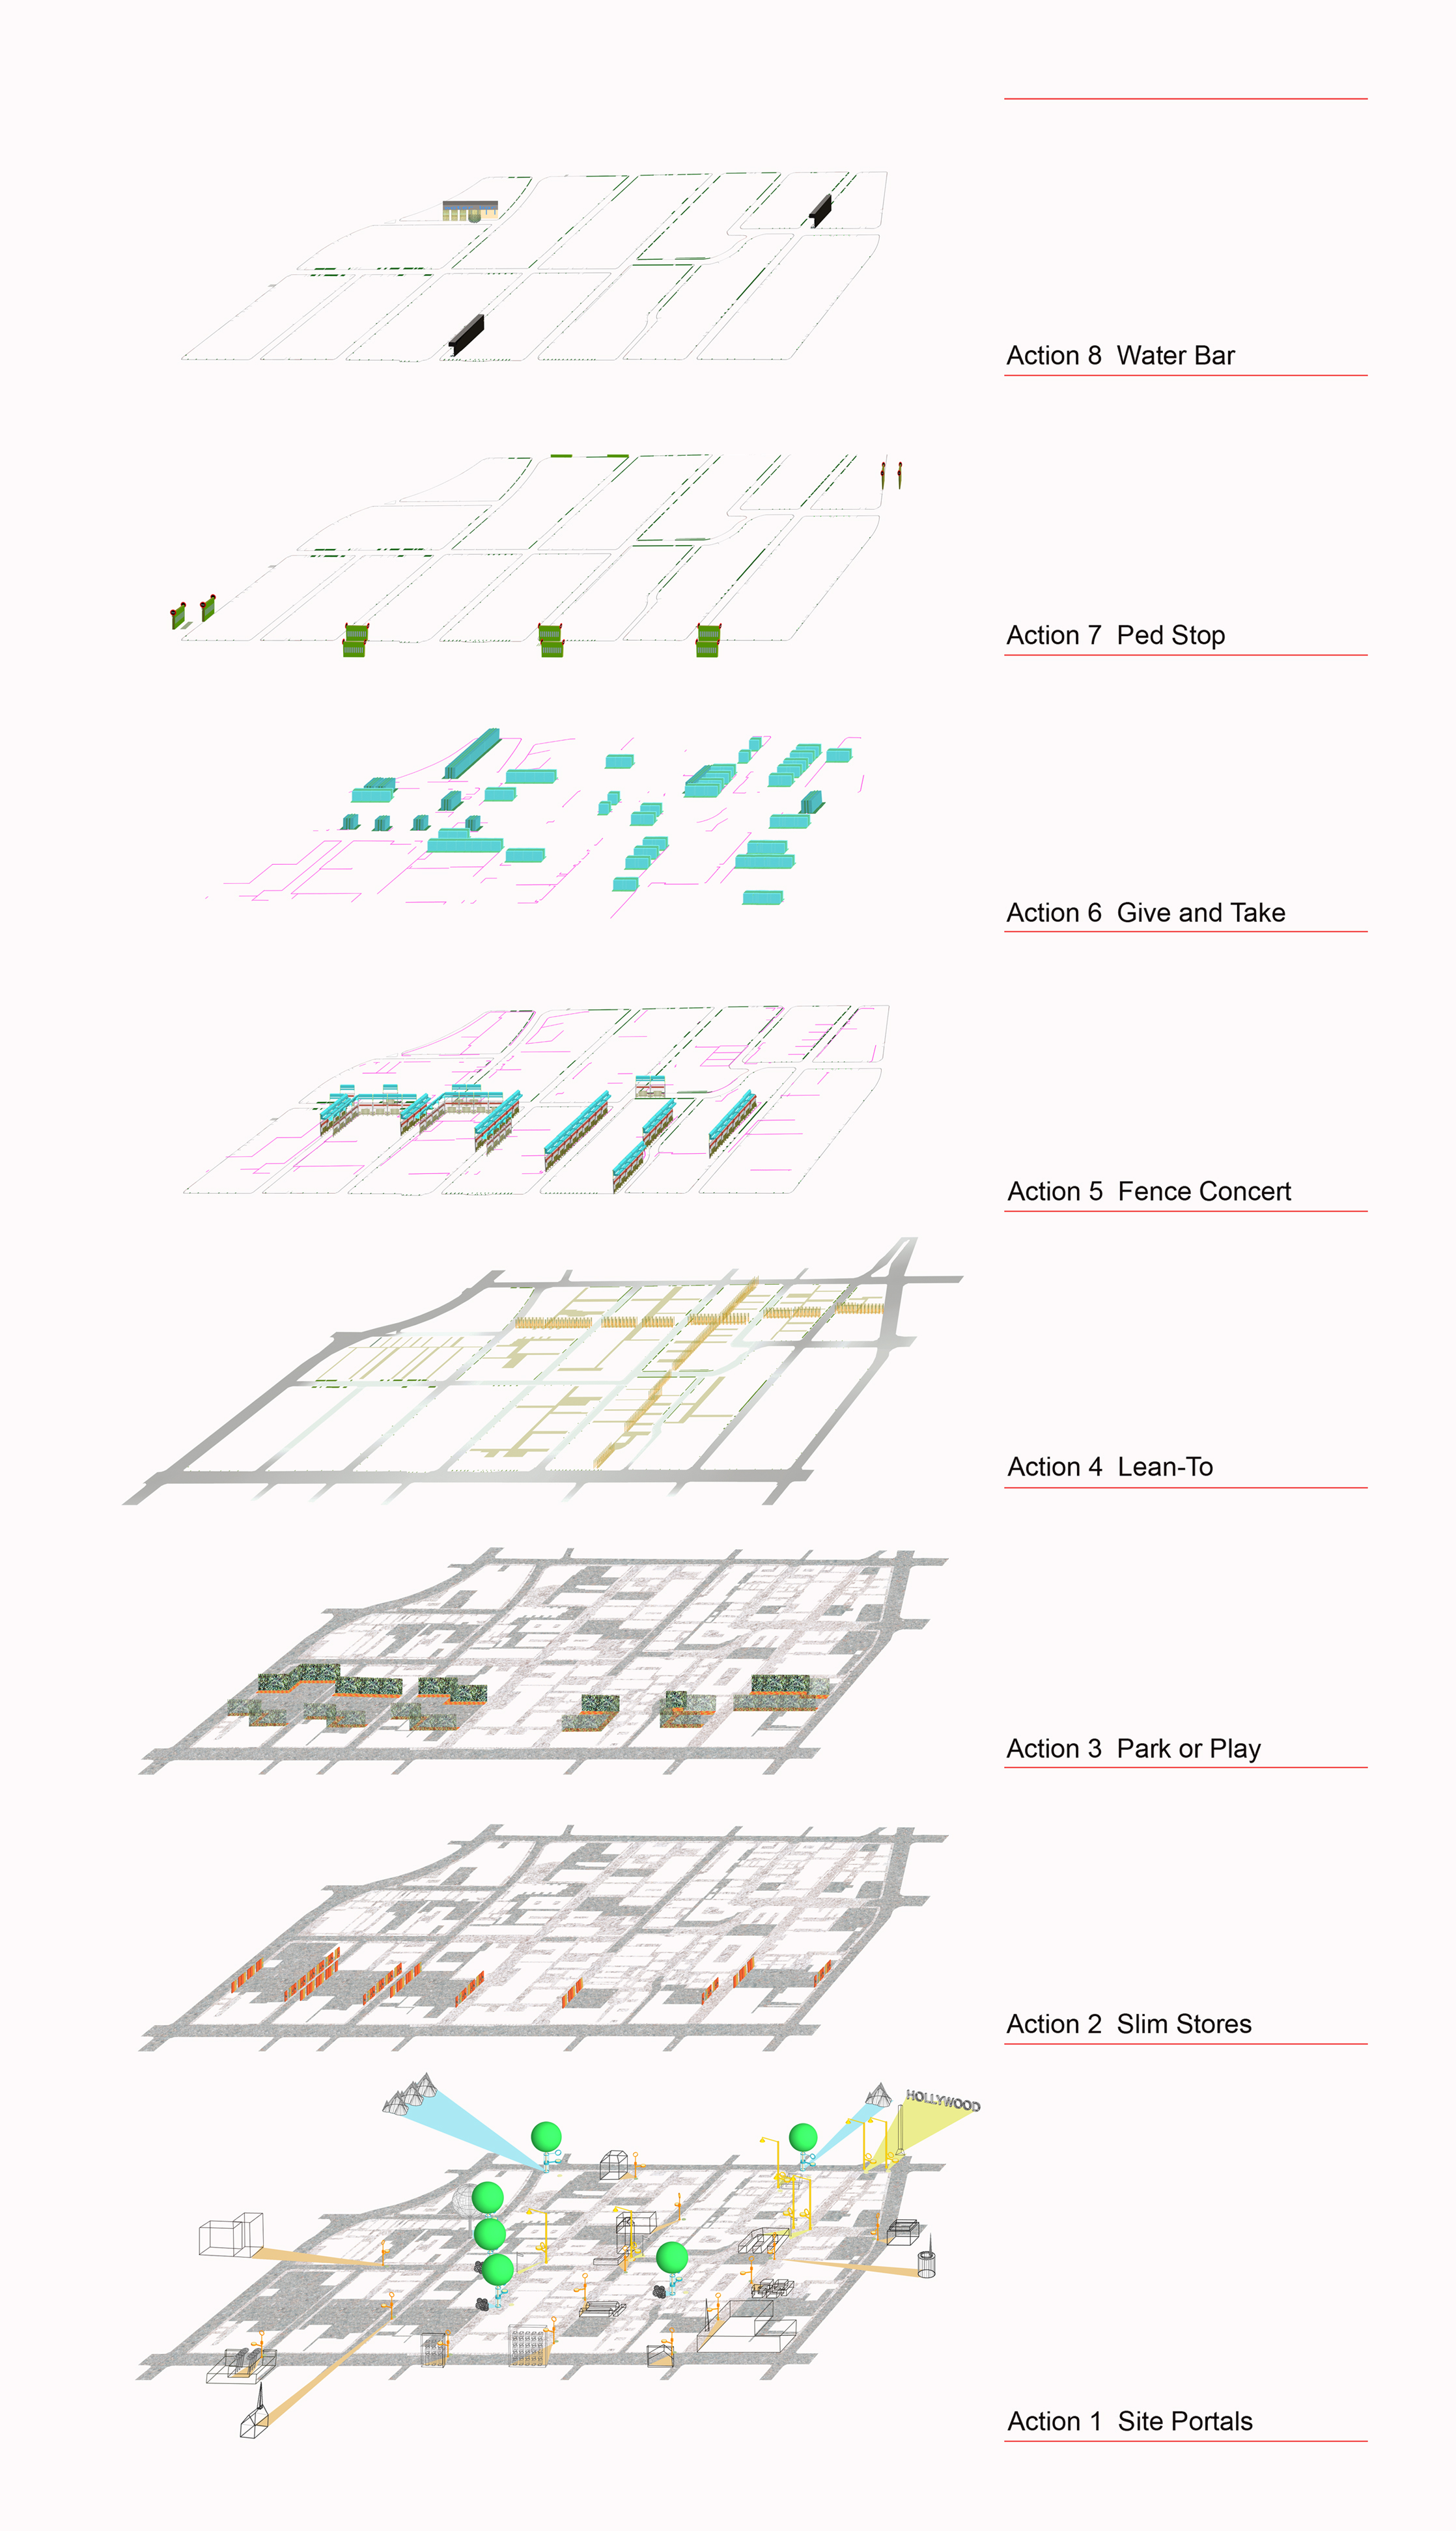 Finding Public Space In the Margins Exploded Axonometric  : Finding Public Space In the Margins Exploded Axonometric Scenarios from urbanrockdesign.com size 2236 x 3887 jpeg 2136kB